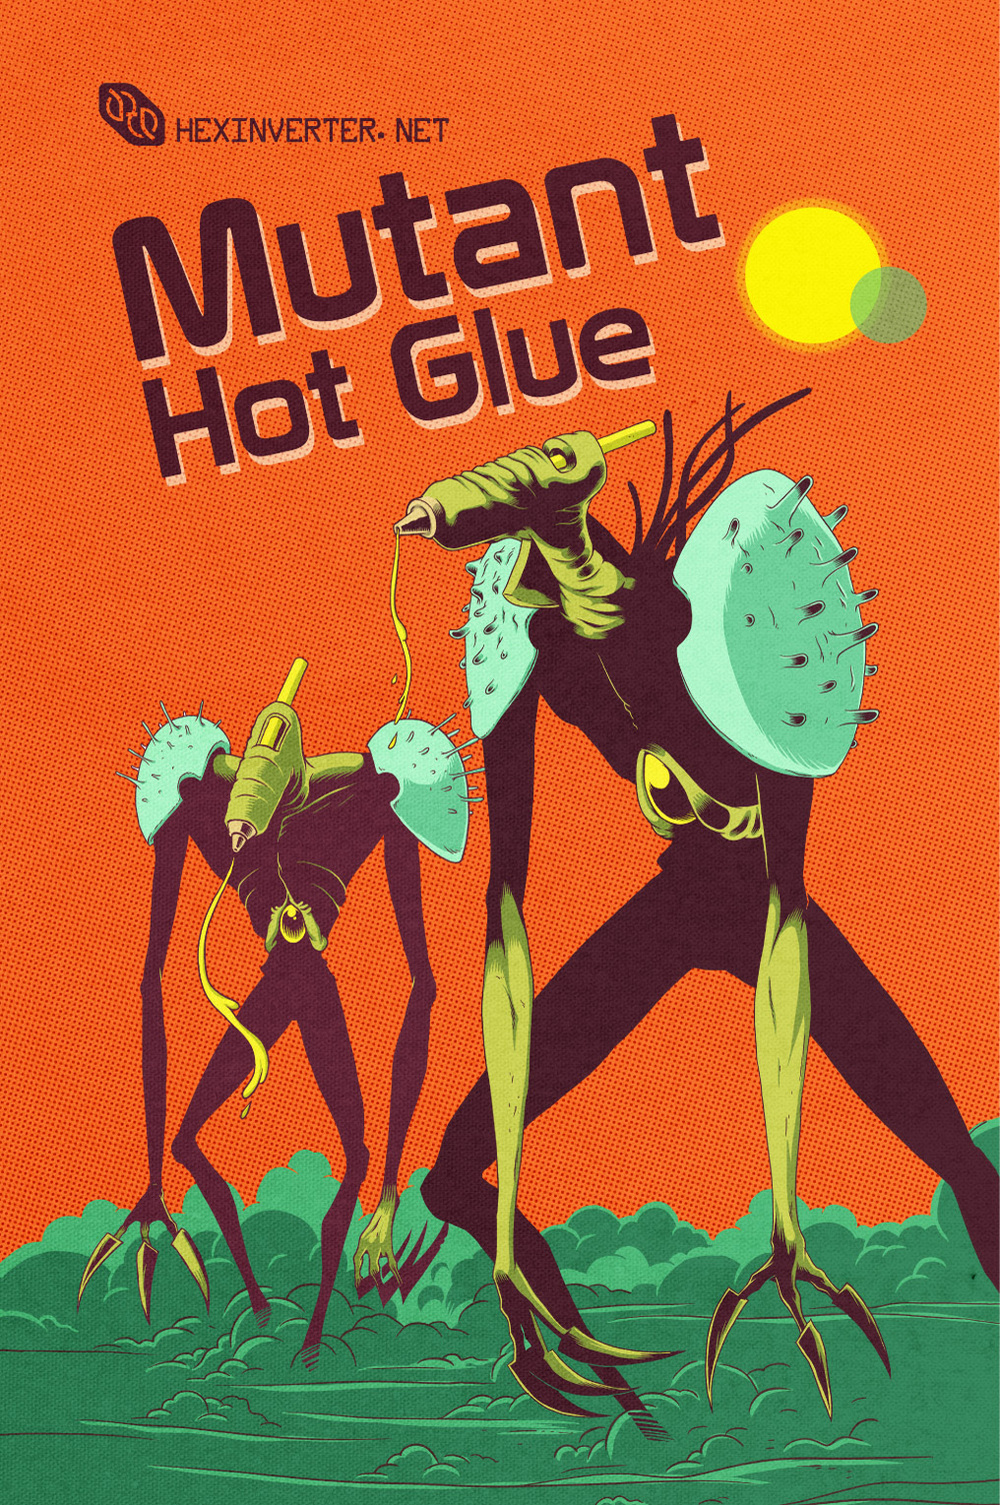 MUTANT_HOTGLUE_promo_web_SMALL.jpg